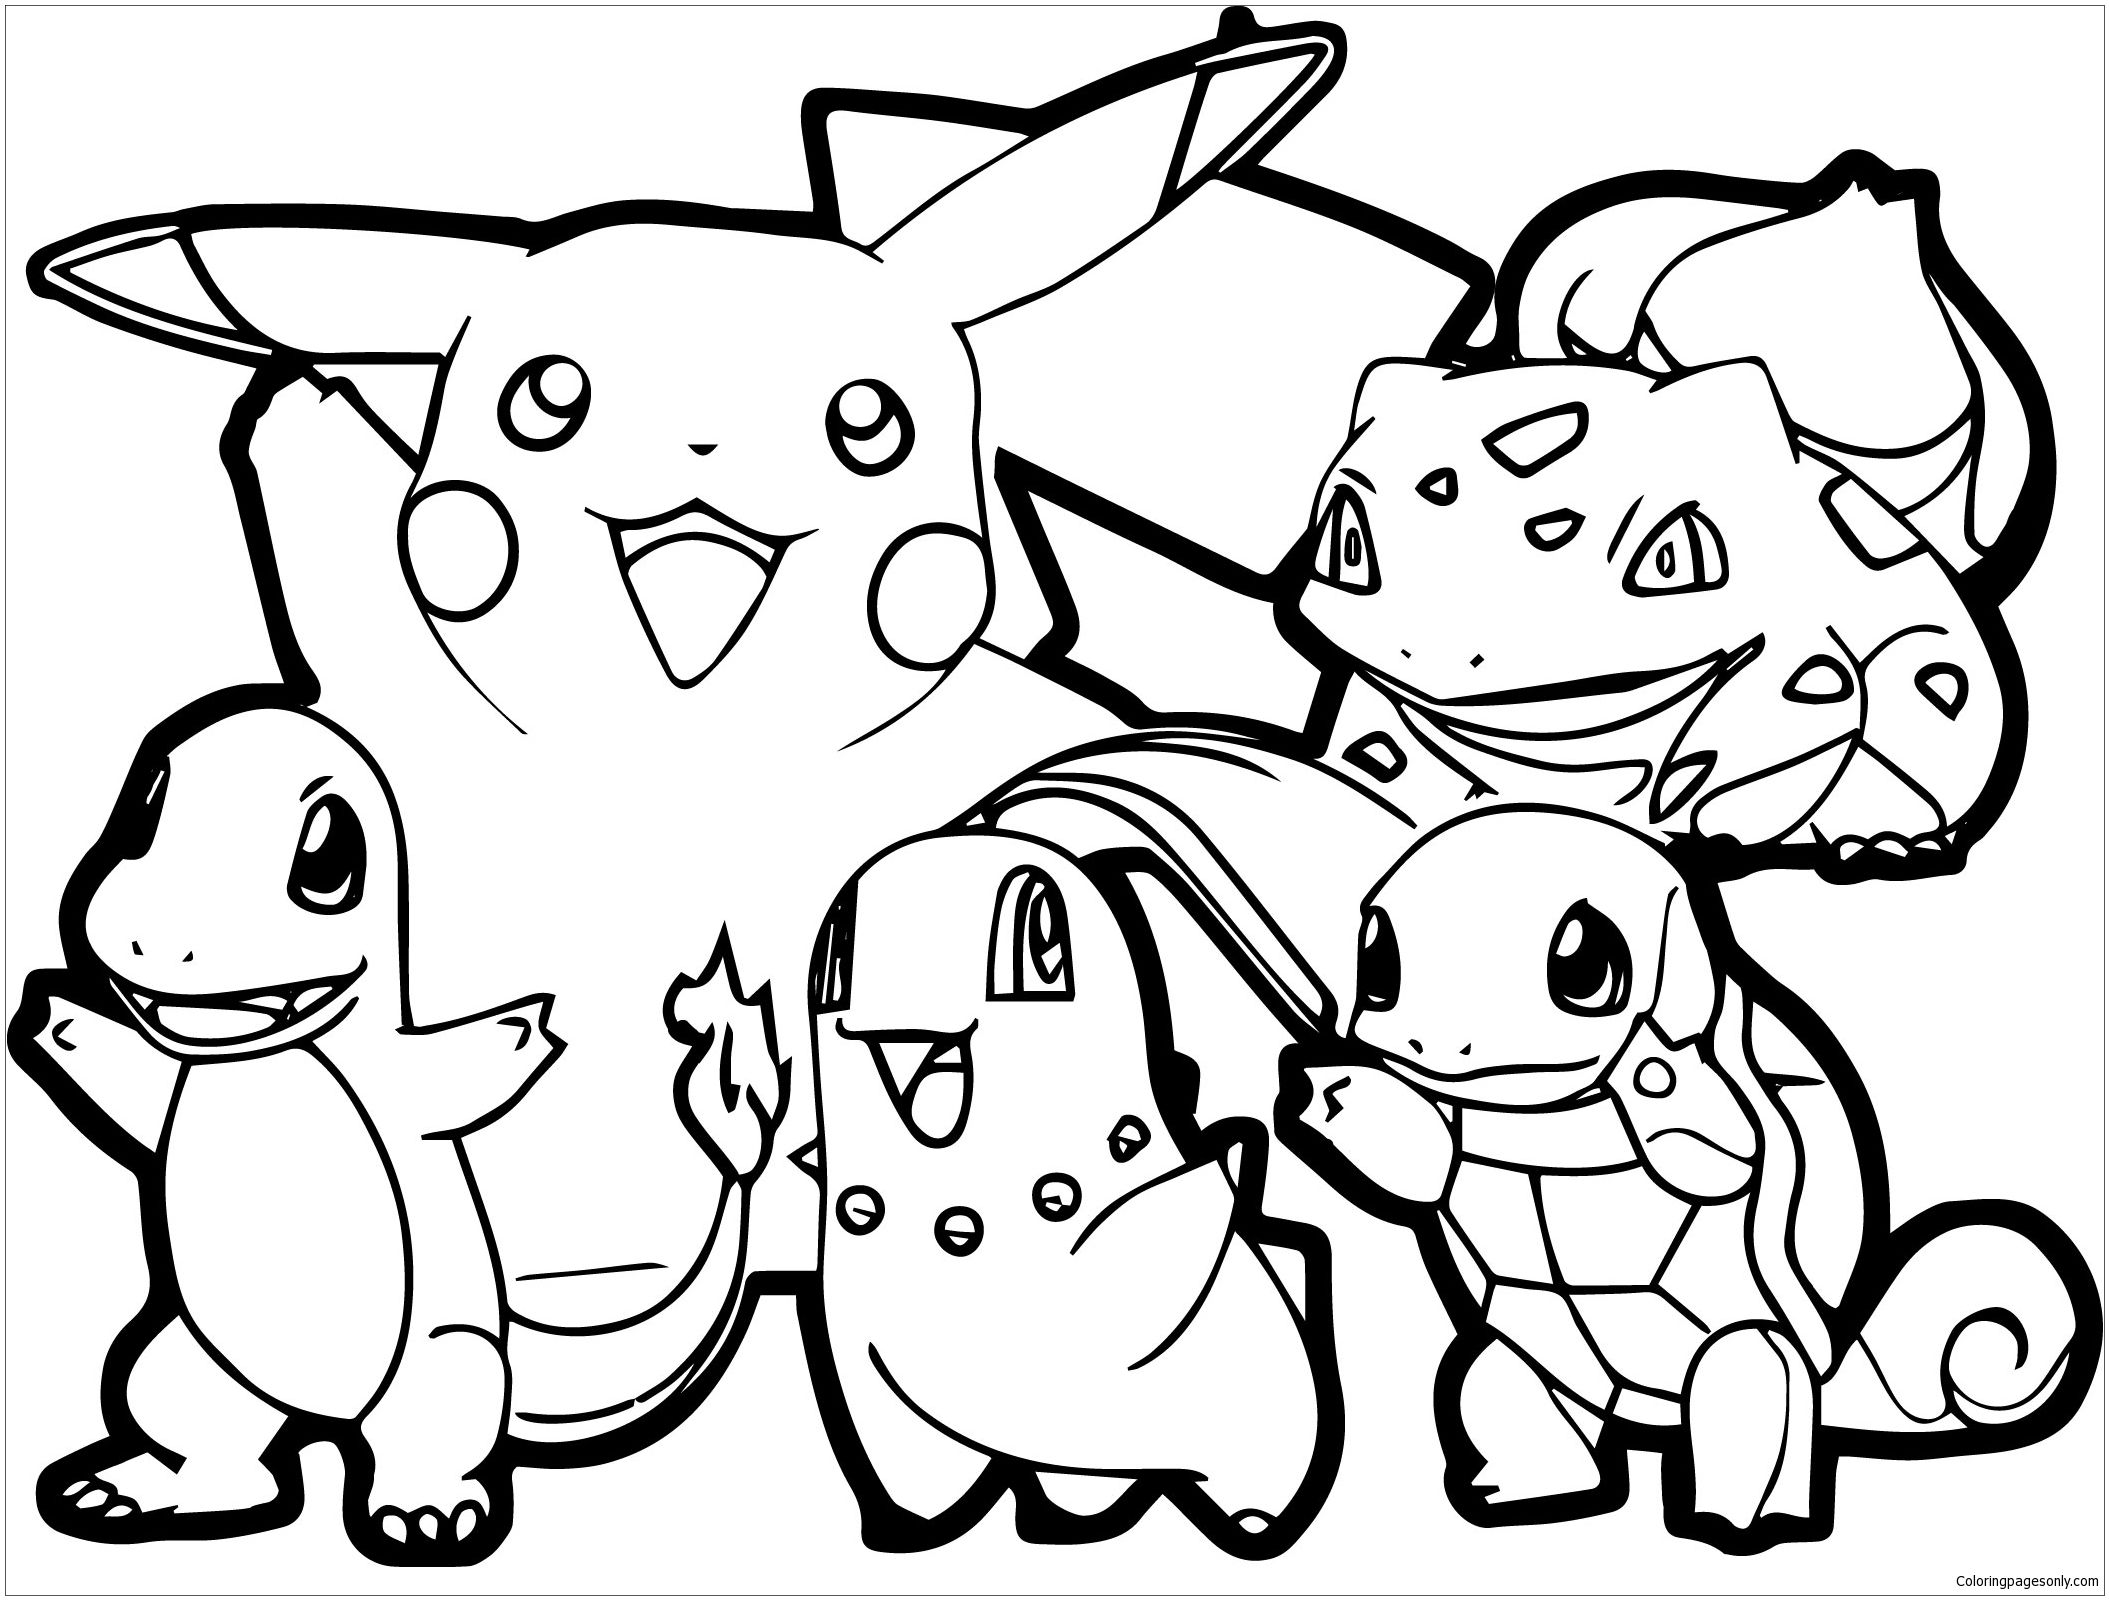 Adult Pokemon Coloring Page Http Coloringpagesonly Com Pages